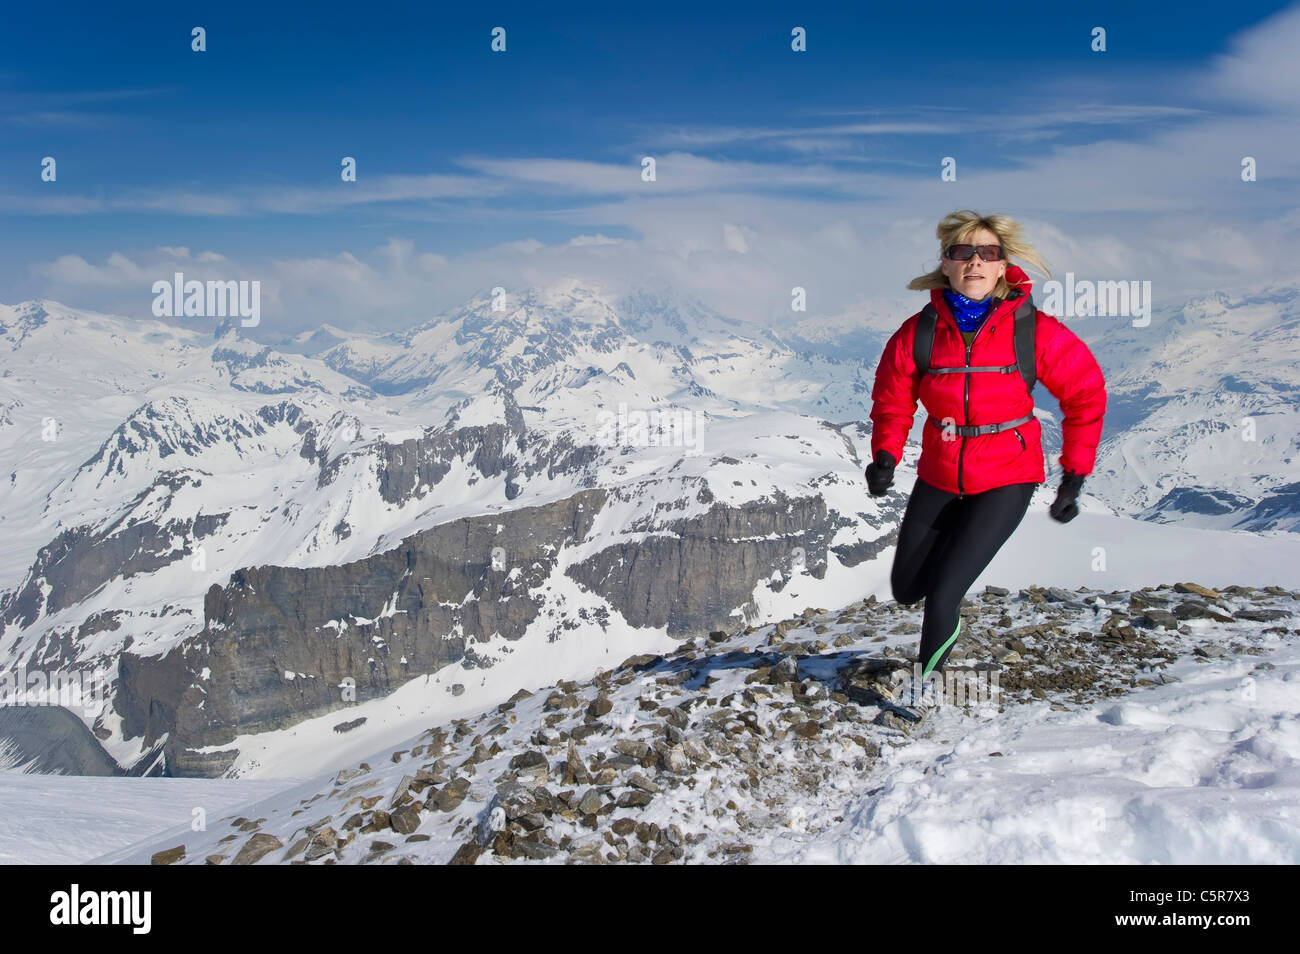 Woman jogging over high snowy peaks. - Stock Image